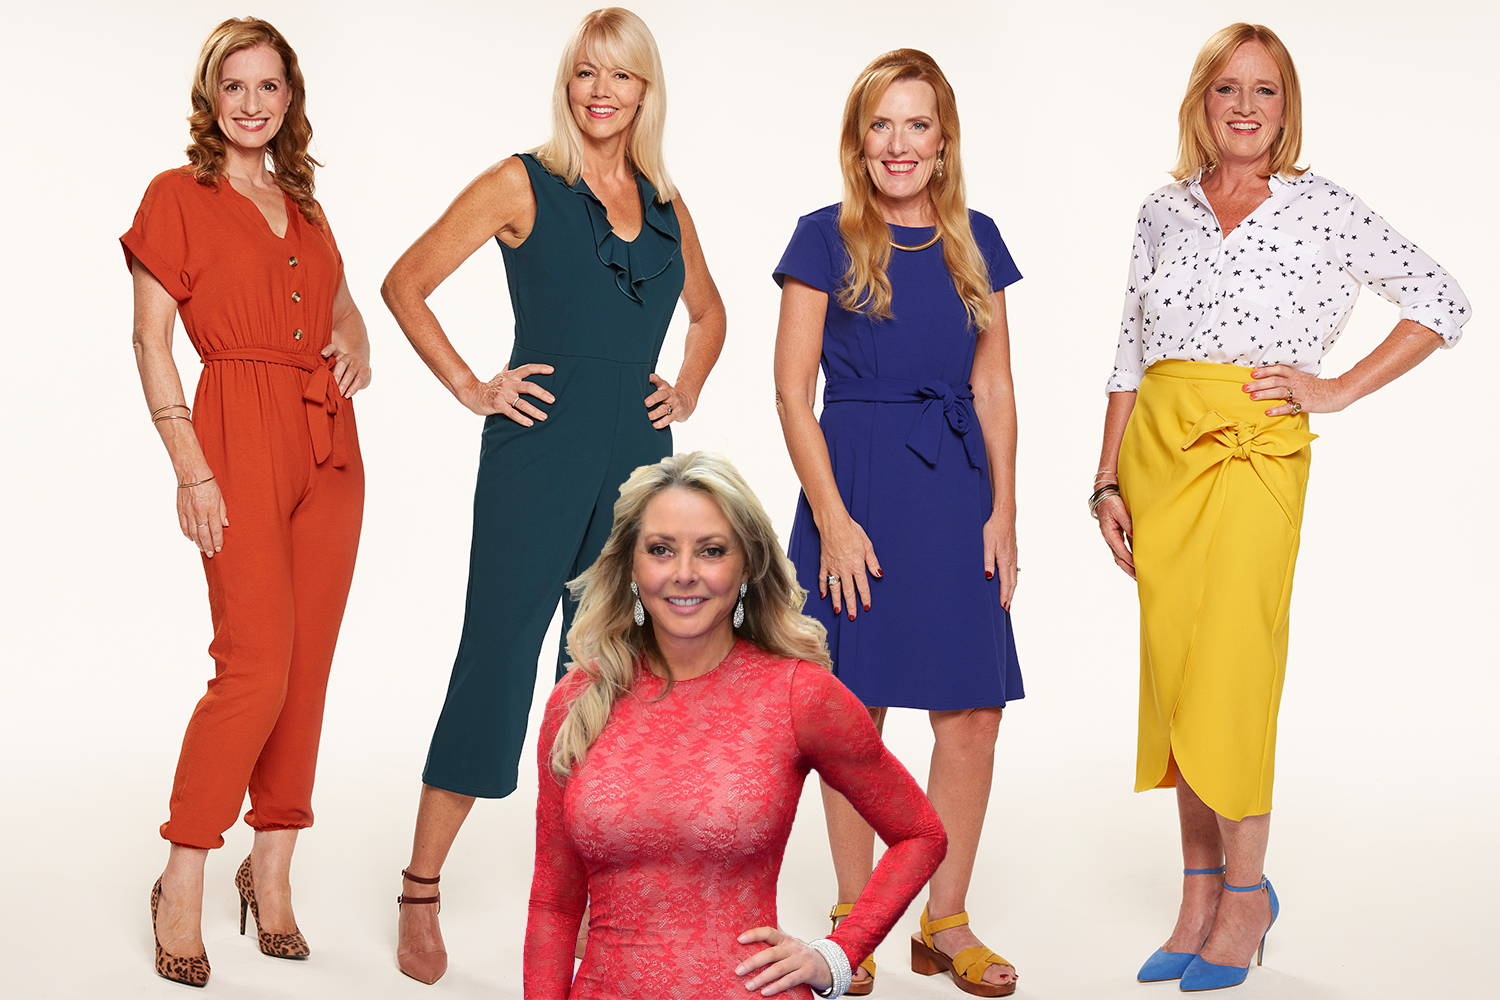 Women on having better sex, feeling confident and looking fabulous at 50 like TV beauty Carol Vorderman